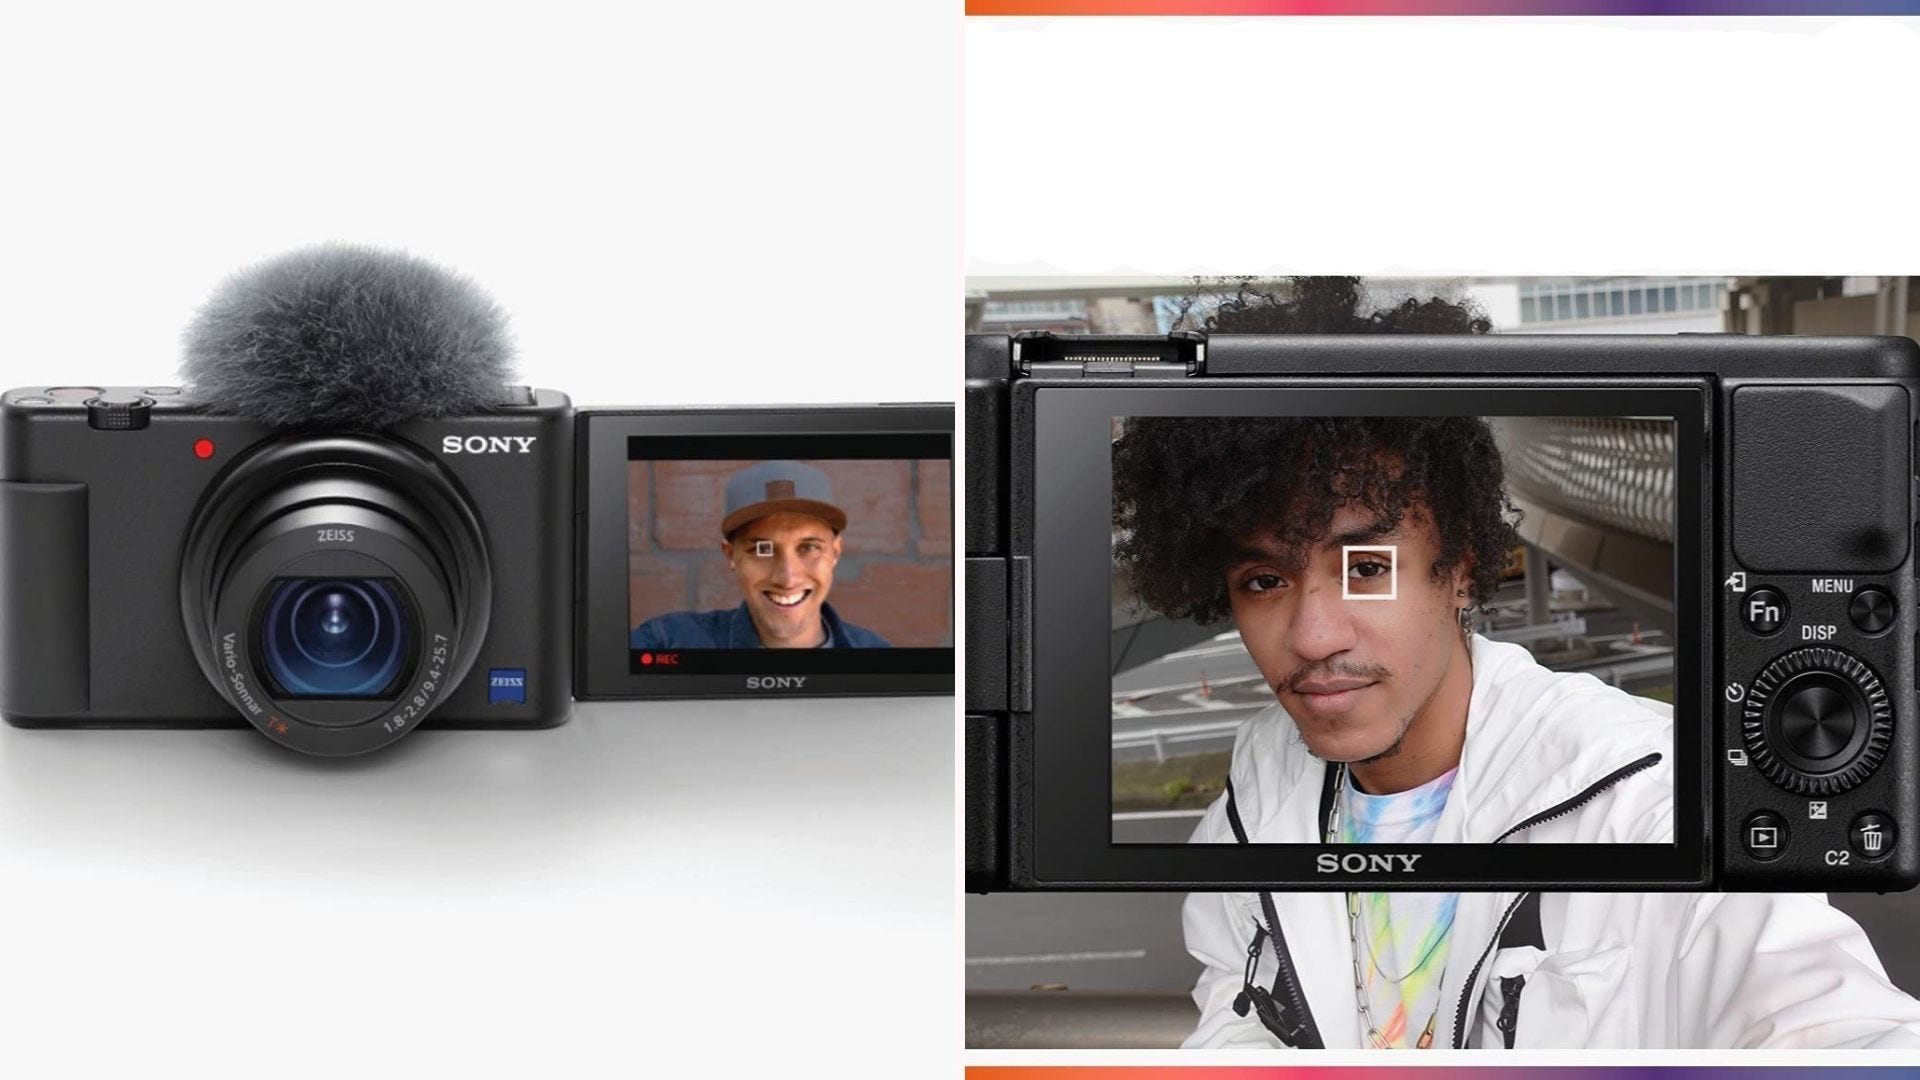 On the left, a black, compact camera with a 24-70mm lens and a three-inch screen. On the right, a user vlogs in front of the camera while its Autofocus setting sticks firmly to the user's eye.